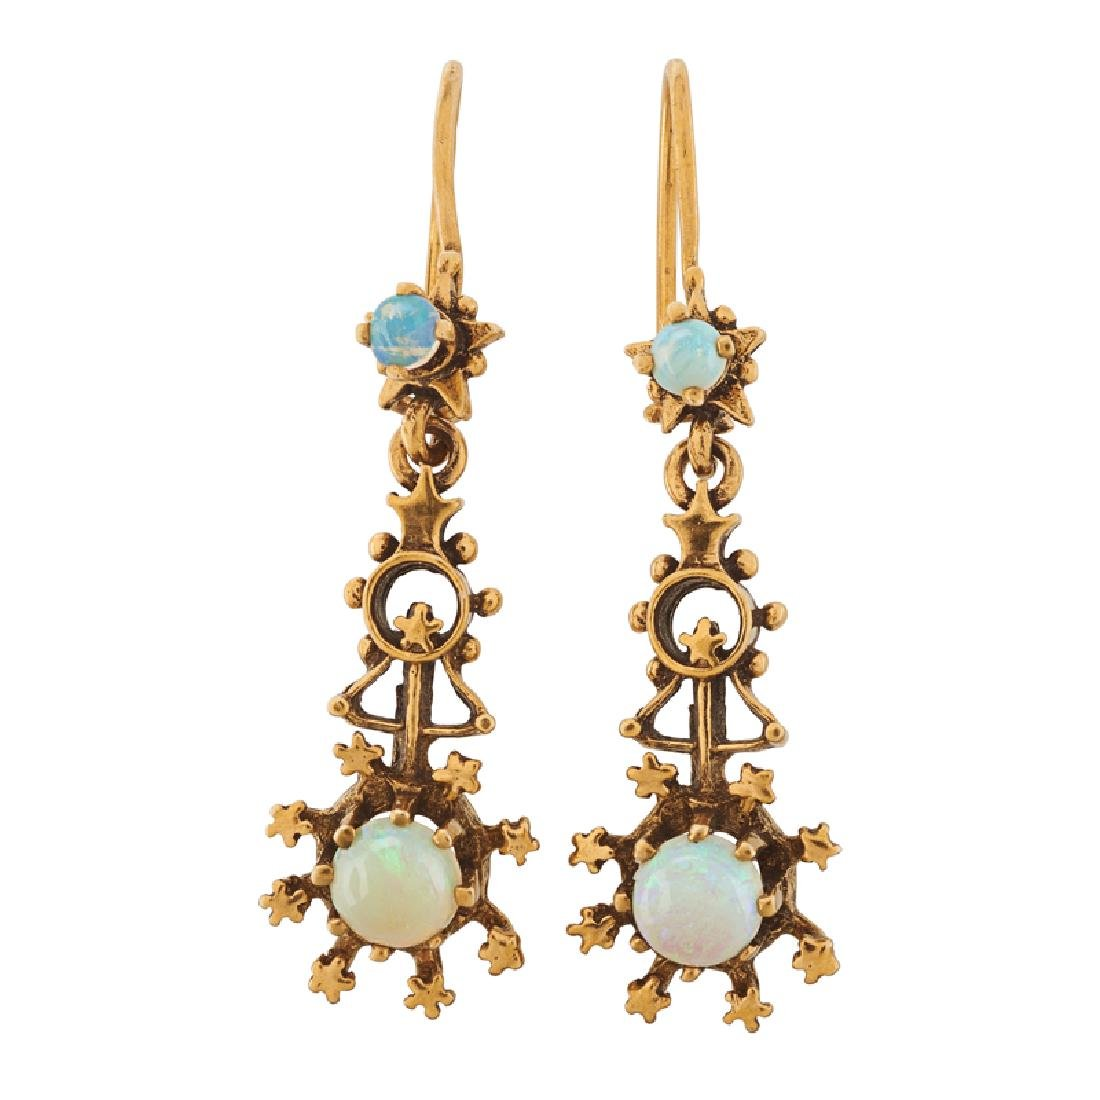 VICTORIAN REVIVAL OPAL & YELLOW GOLD PENDANT EARRINGS